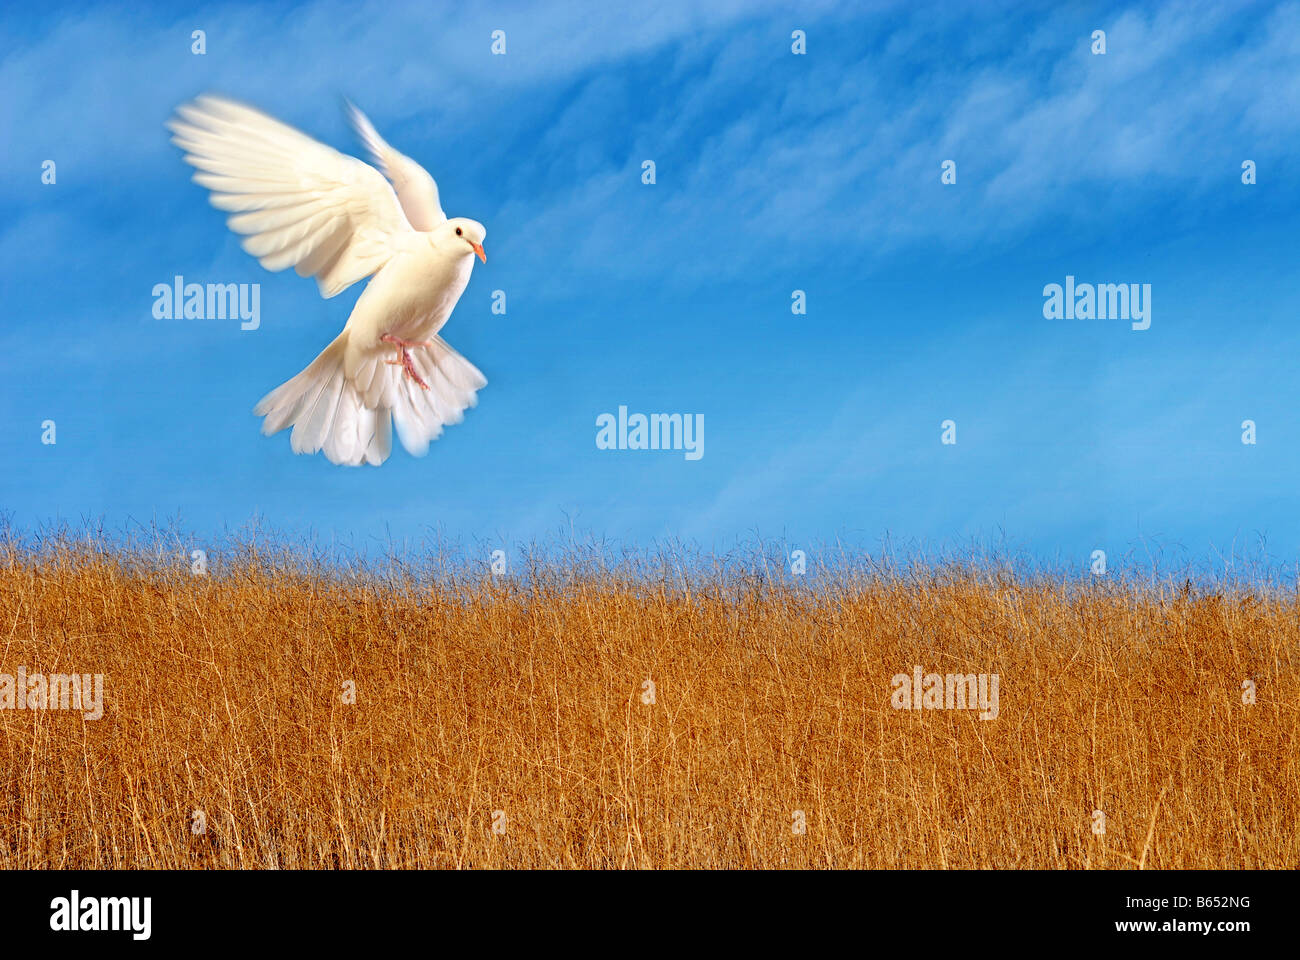 flying white dove - Stock Image